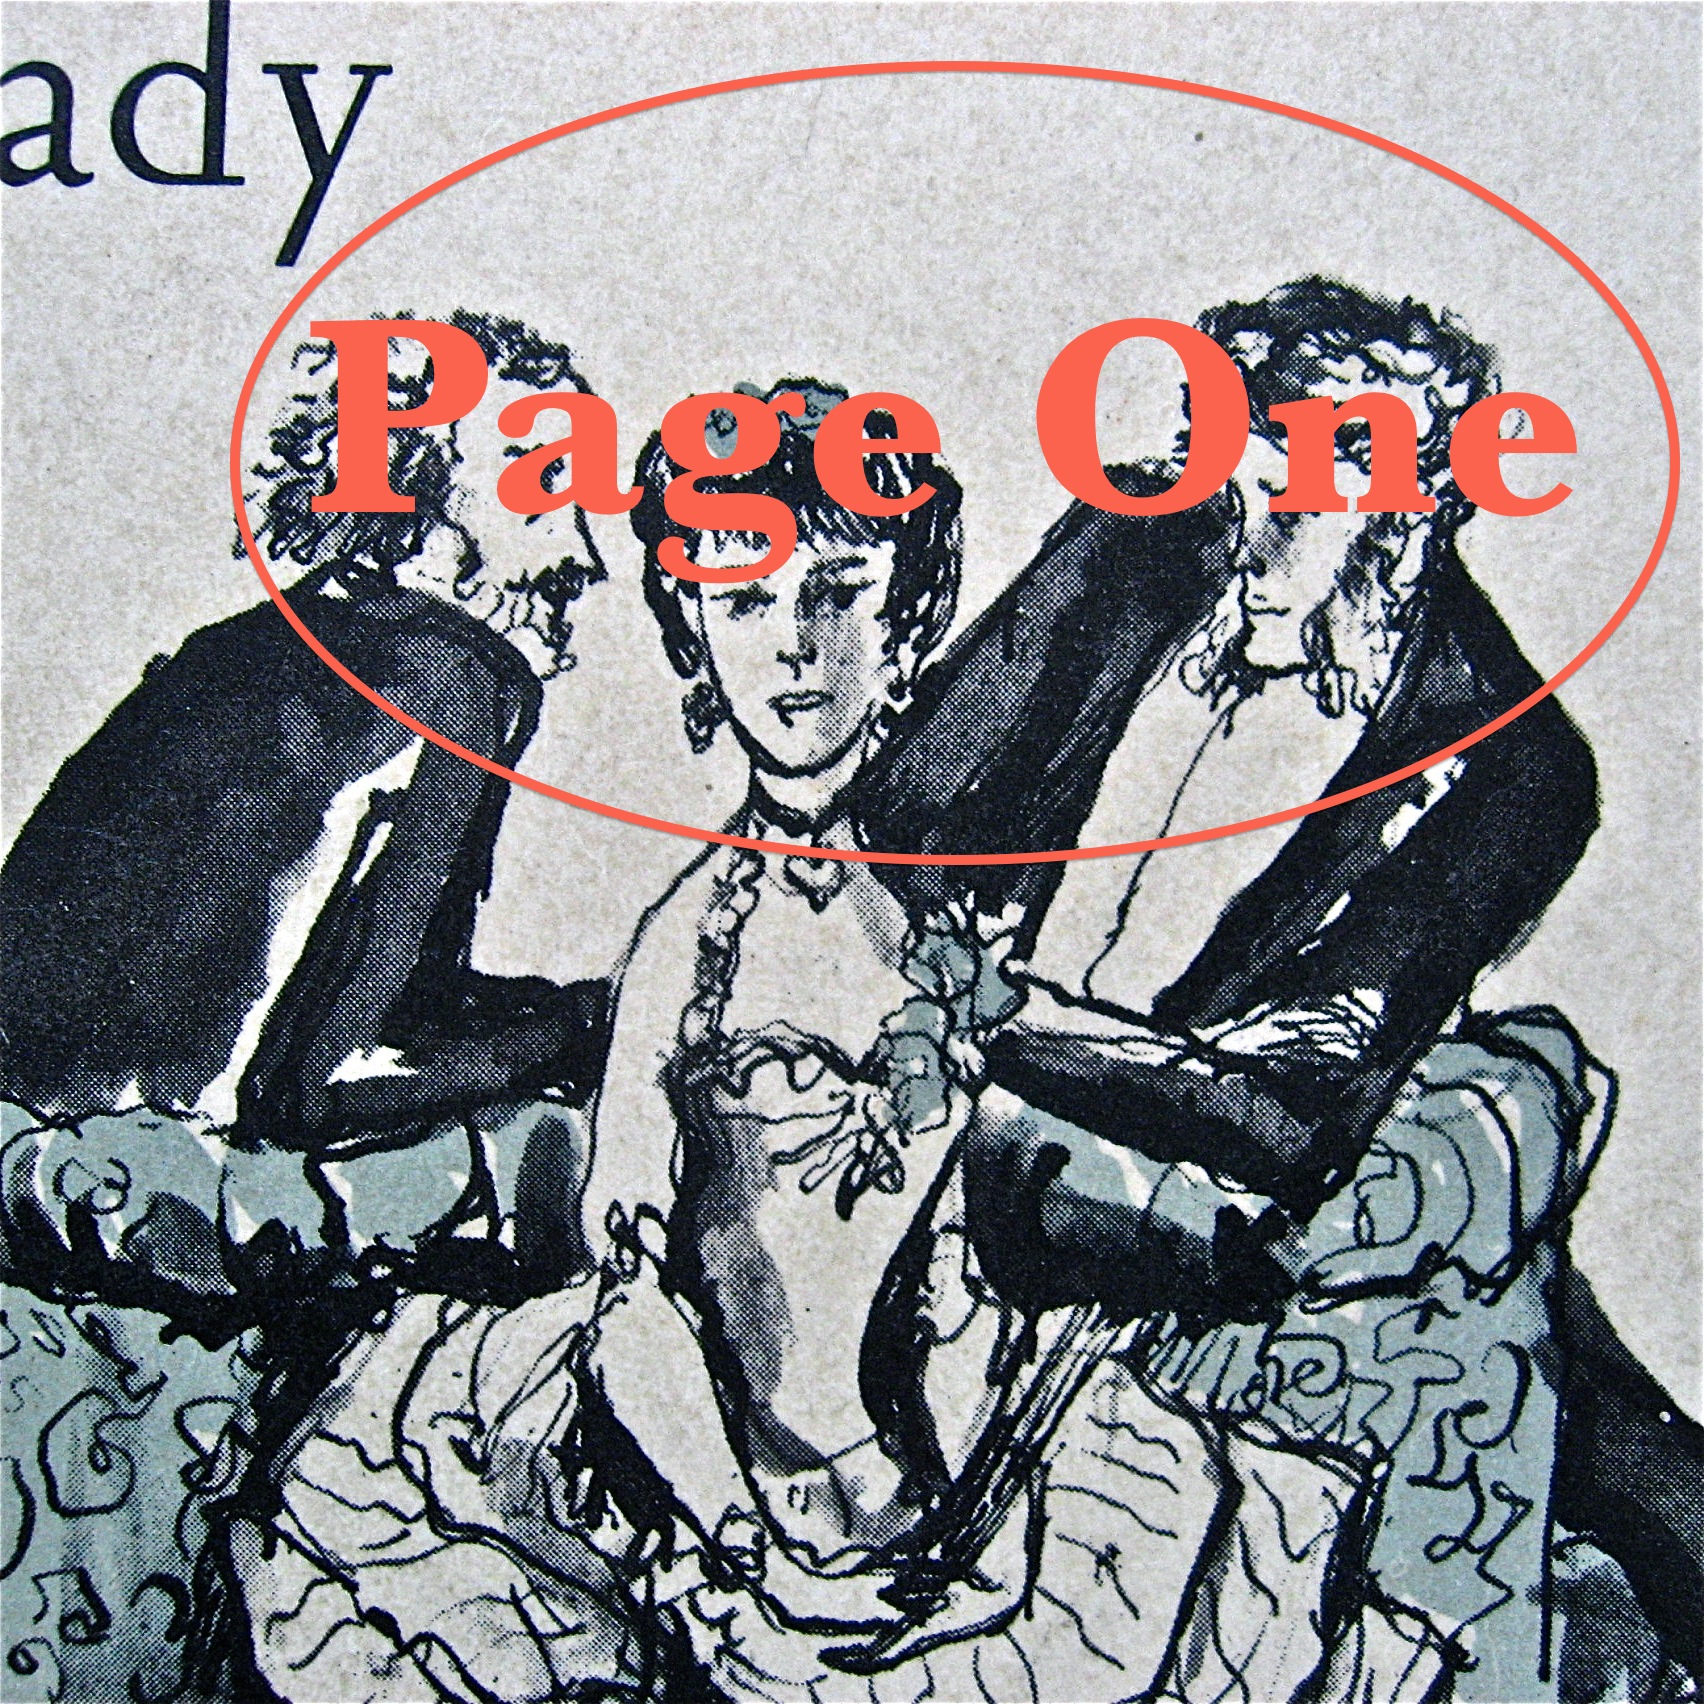 Episode image is a detail from the cover of Portrait Of A Lady by Henry James, published in 1983 by Penguin Books; cover illustration by Philippe Jullian.